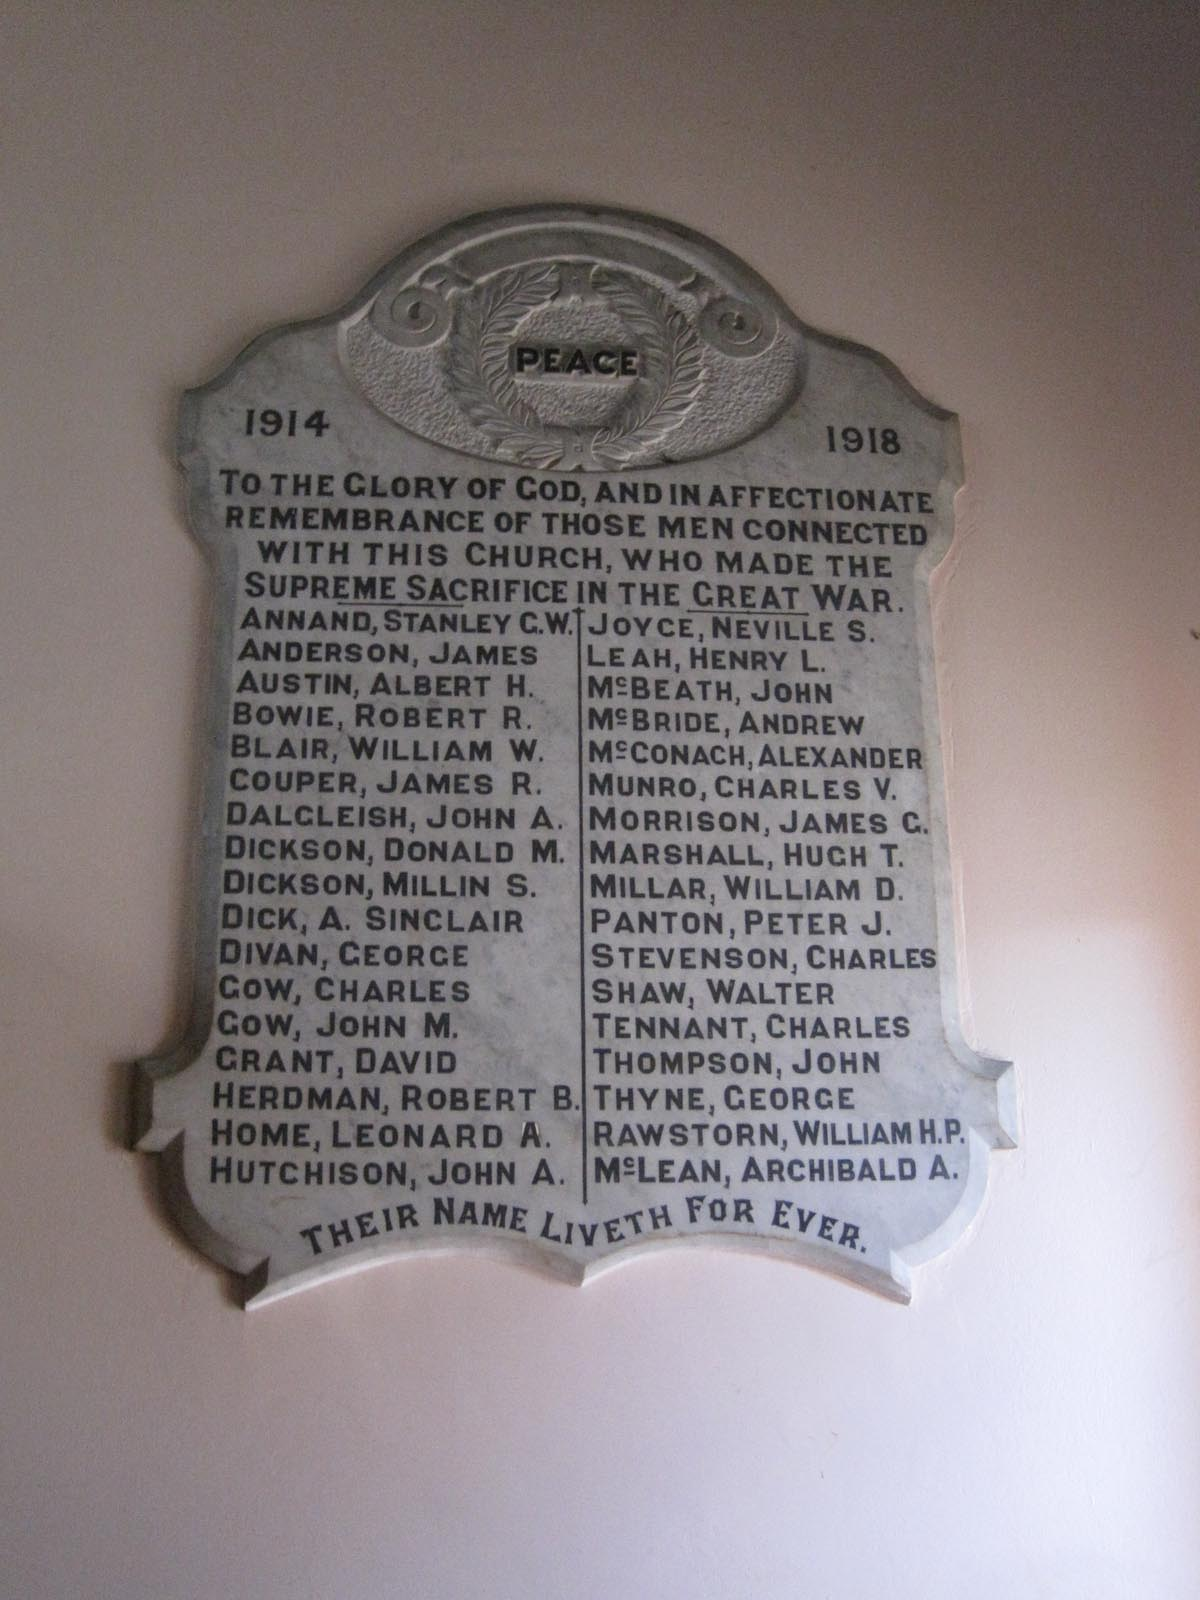 Chalmers Church memorial plaque, photographed in 2010